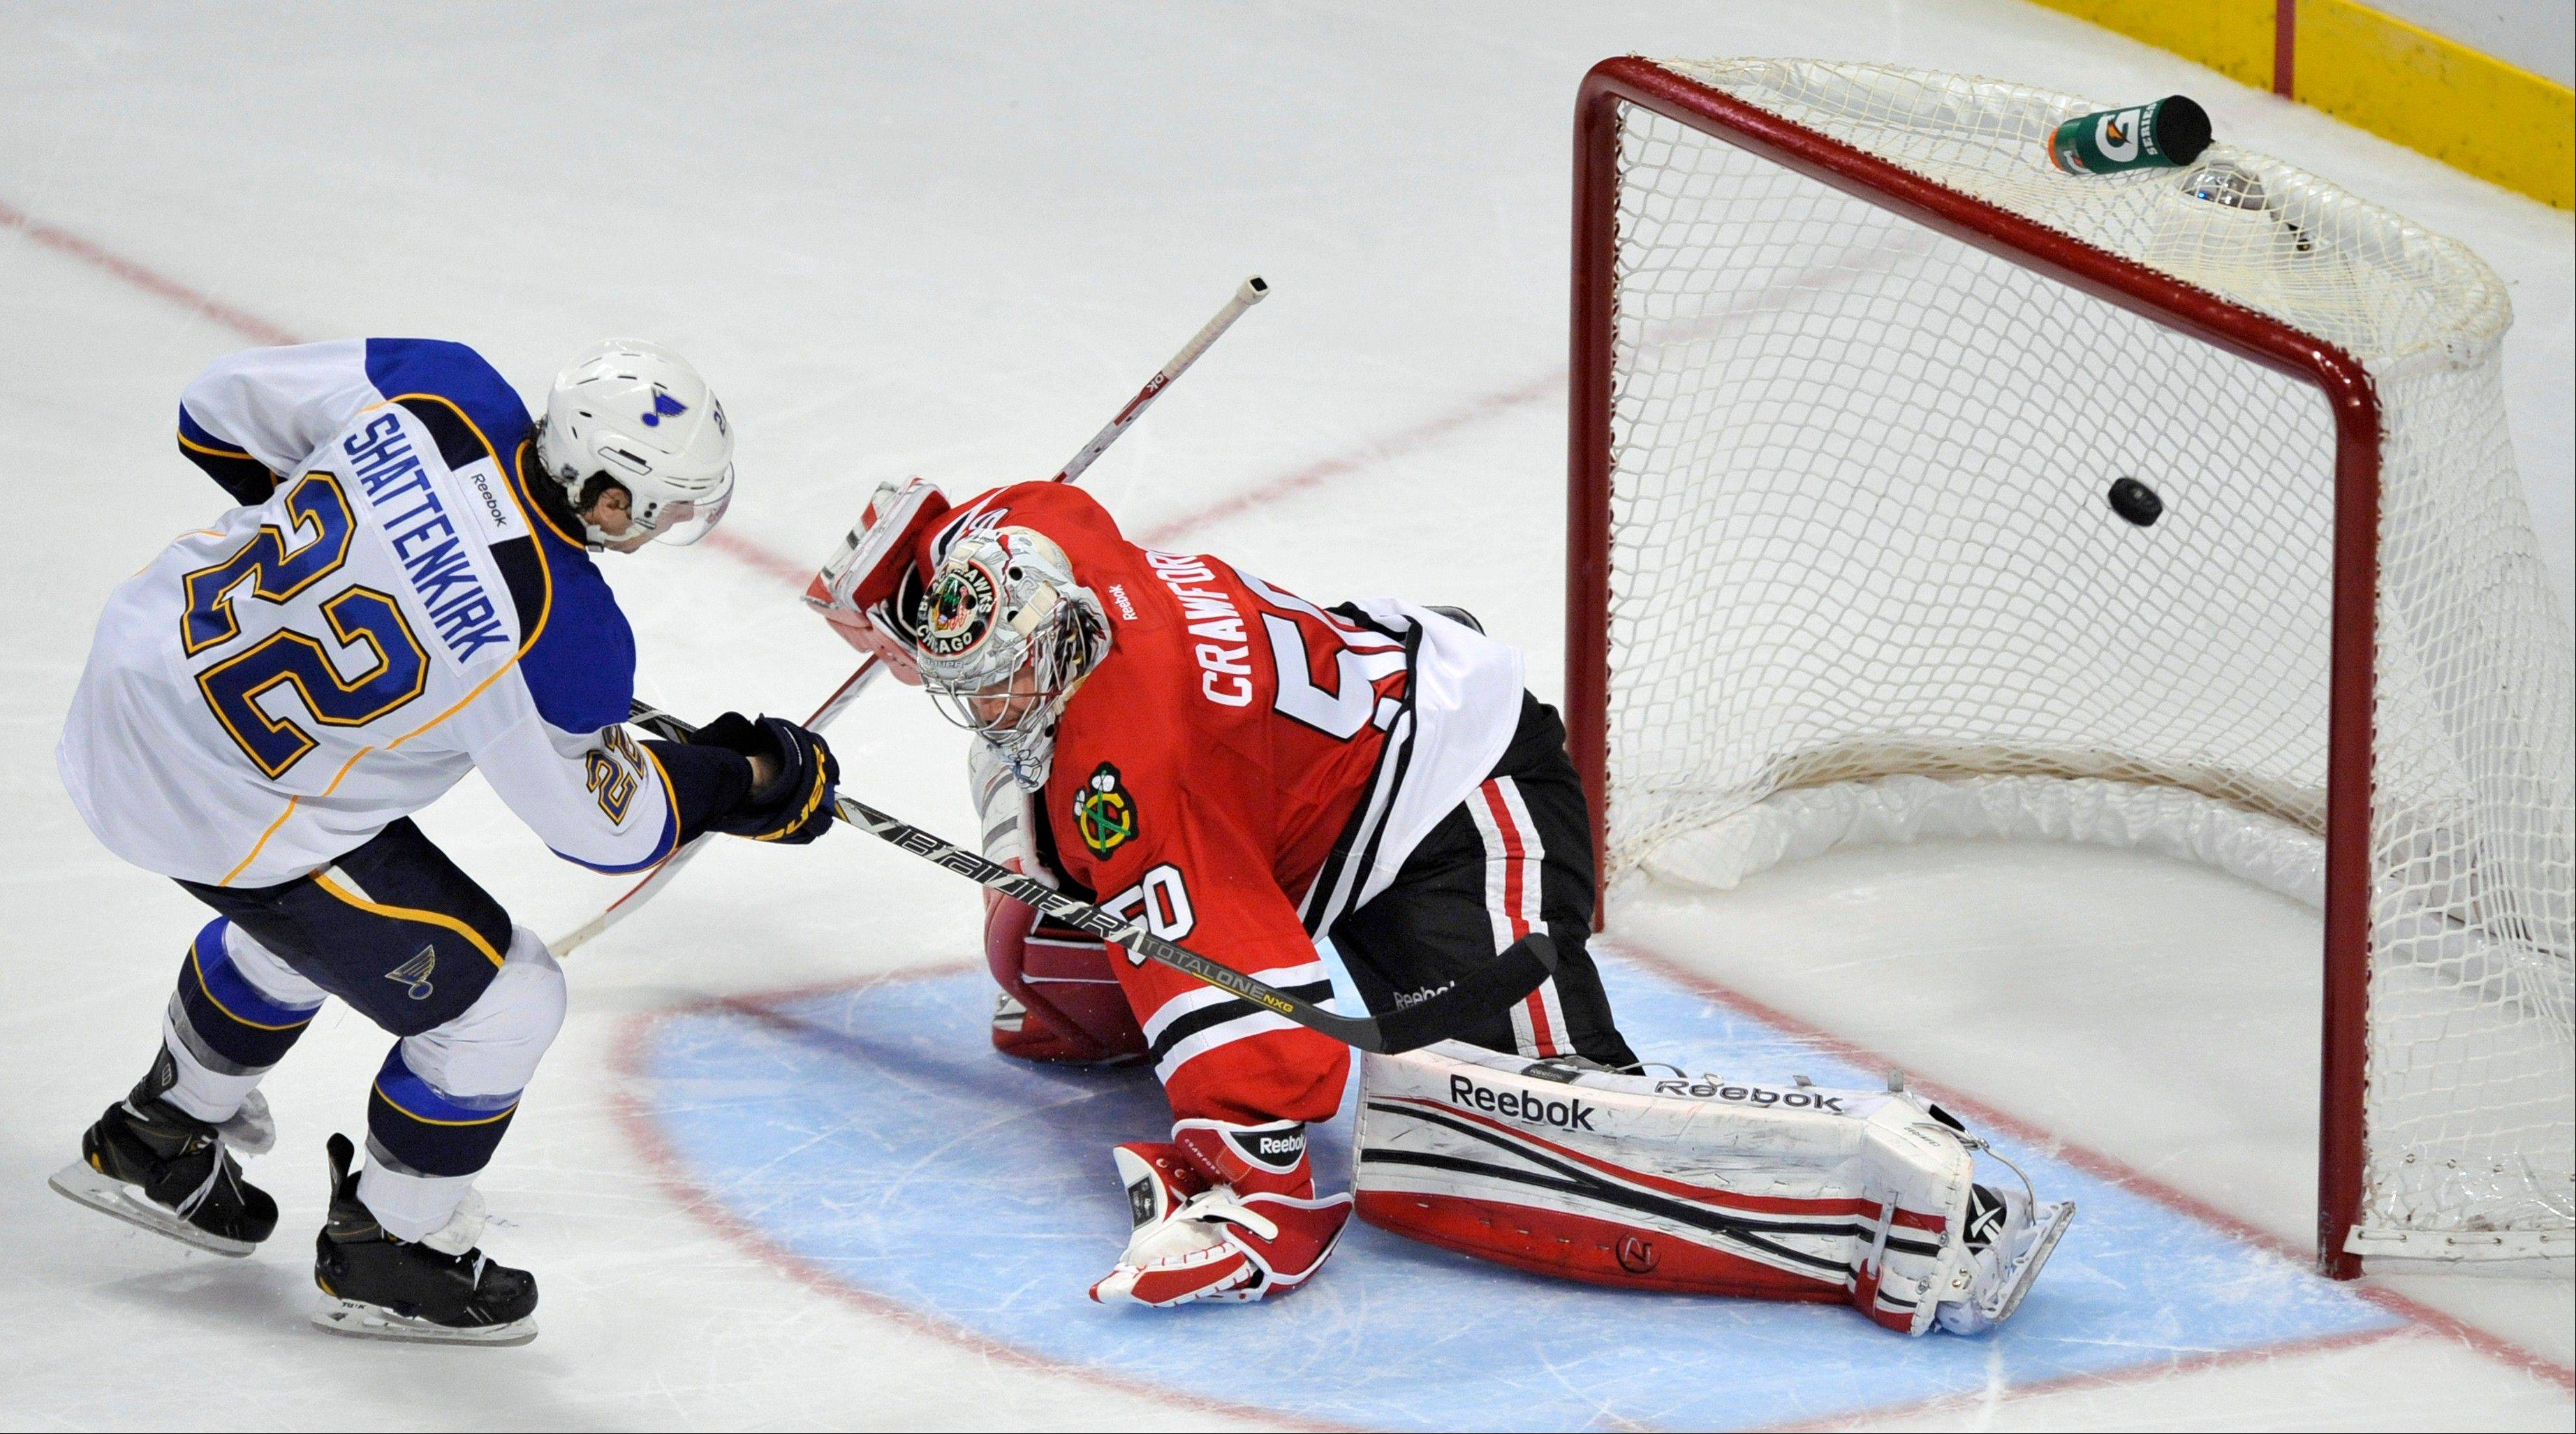 St. Louis' Kevin Shattenkirk scores against Corey Crawford during a shootout Thursday at the United Center.